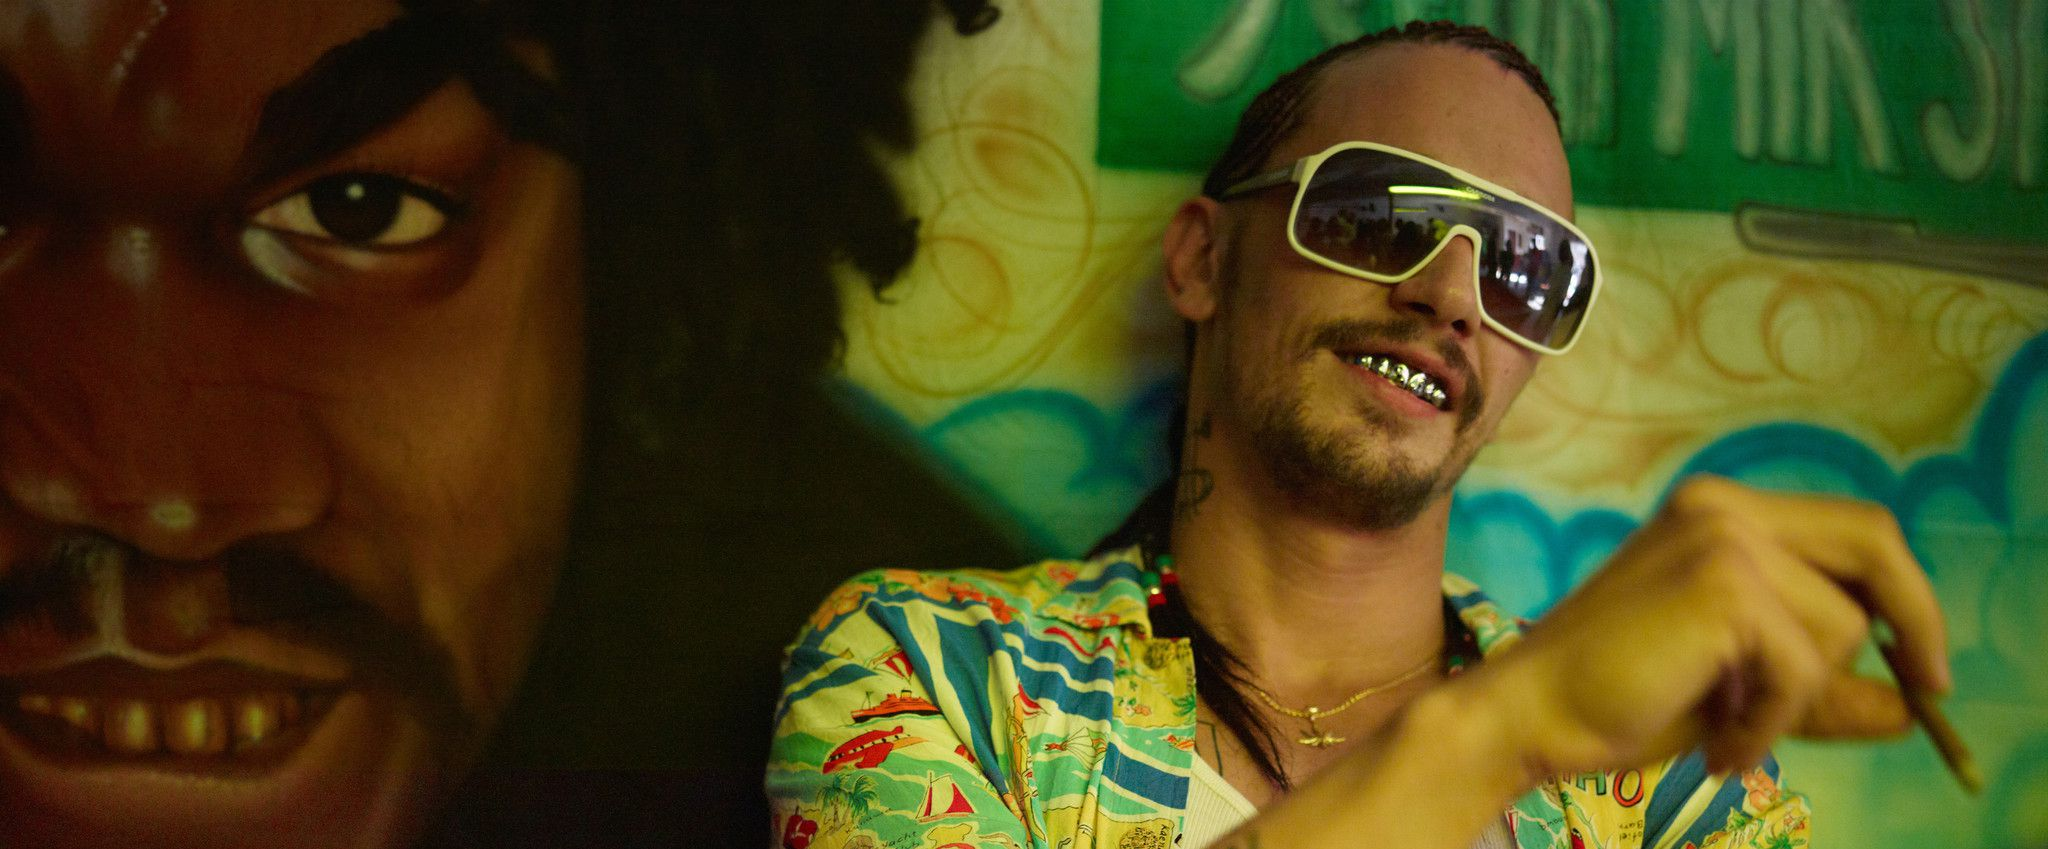 James Franco dans le film Spring Breakers. Crédit Photo: AP Photo/A24 Films, Michael Muller